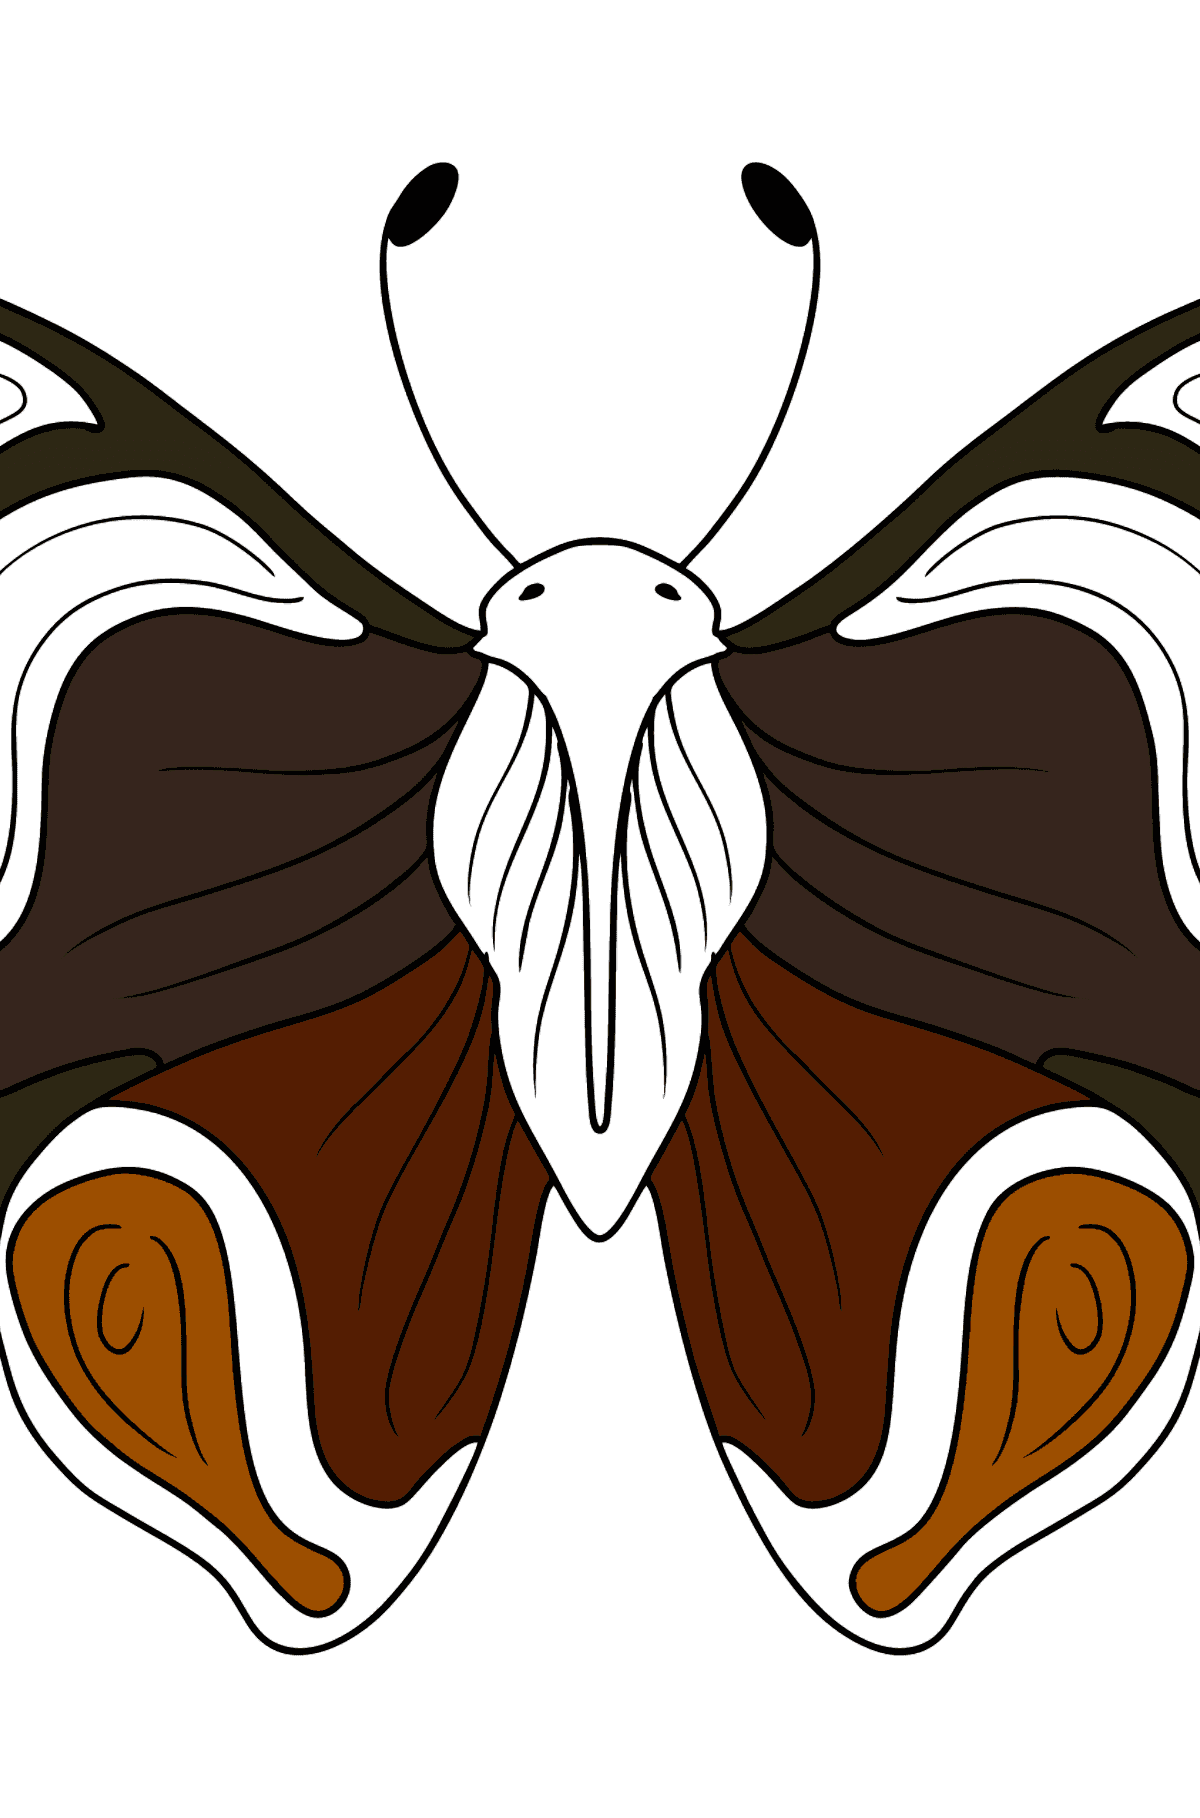 Admiral Butterfly coloring page - Coloring Pages for Kids